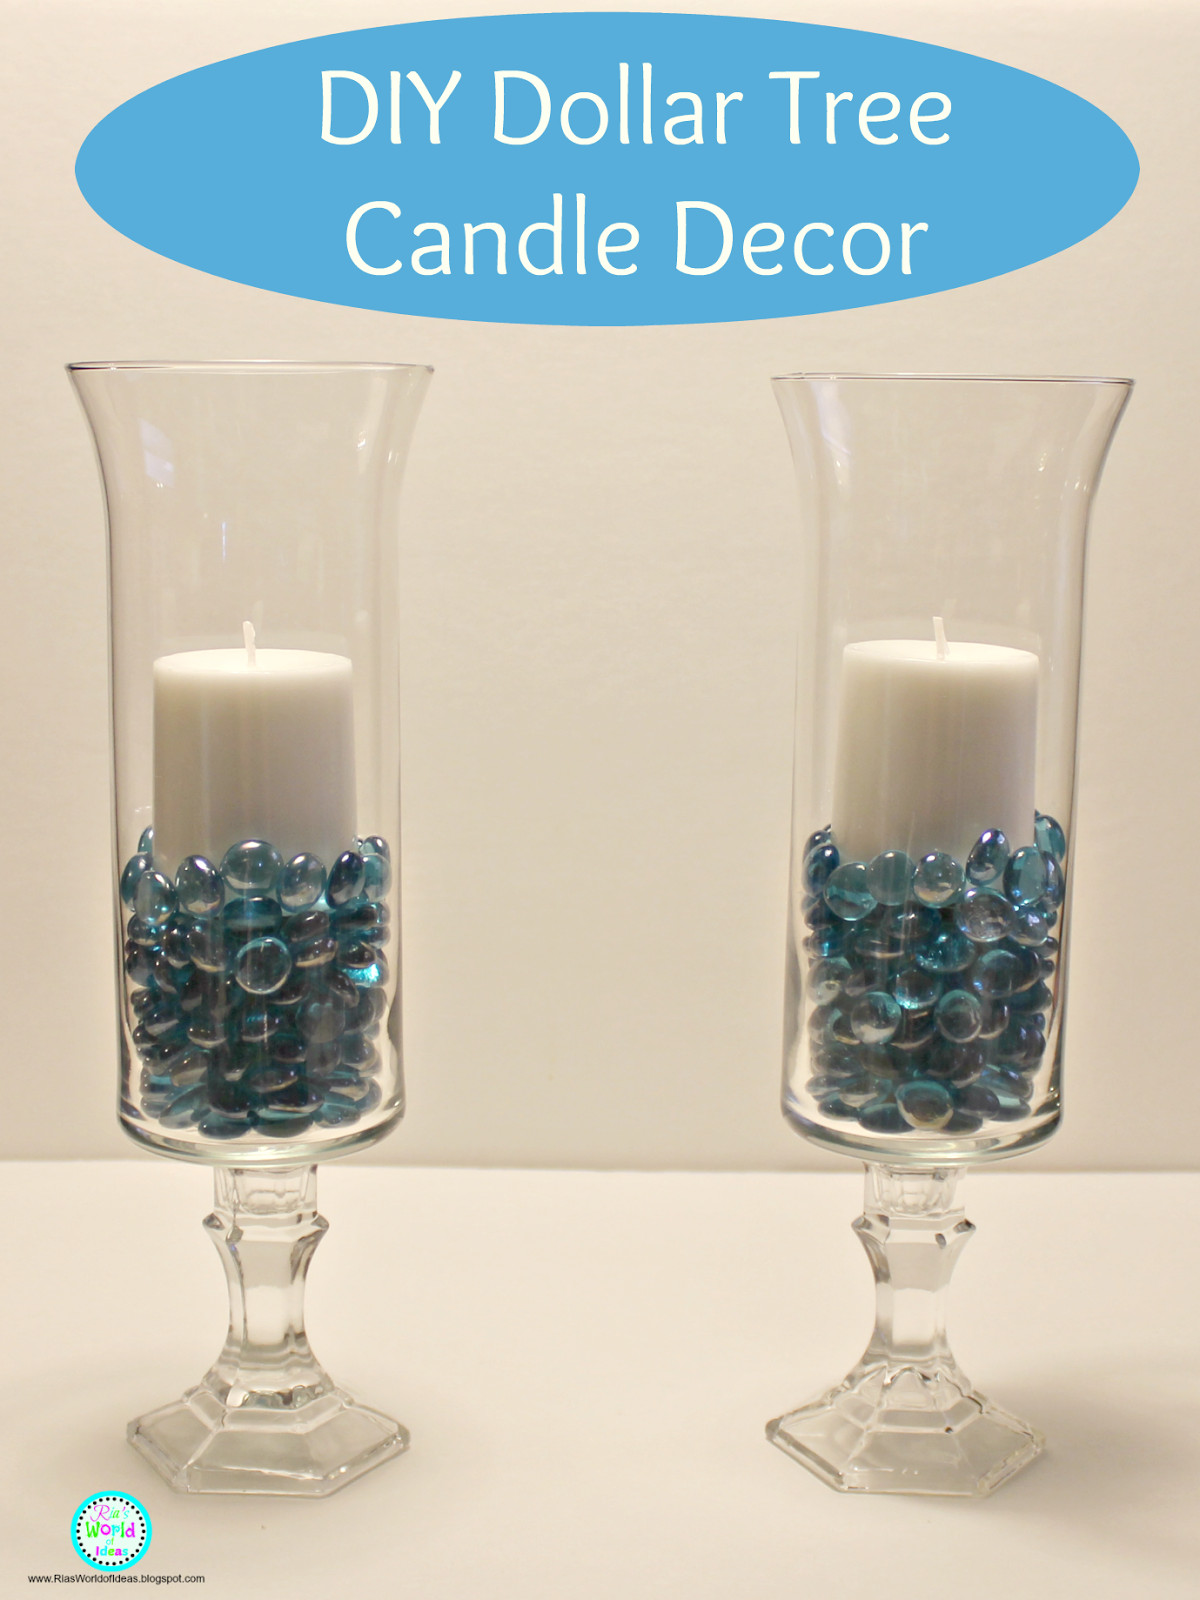 Best ideas about Dollar Tree DIY Decor . Save or Pin Ria s World of Ideas DIY Dollar Tree Candle Decor Now.